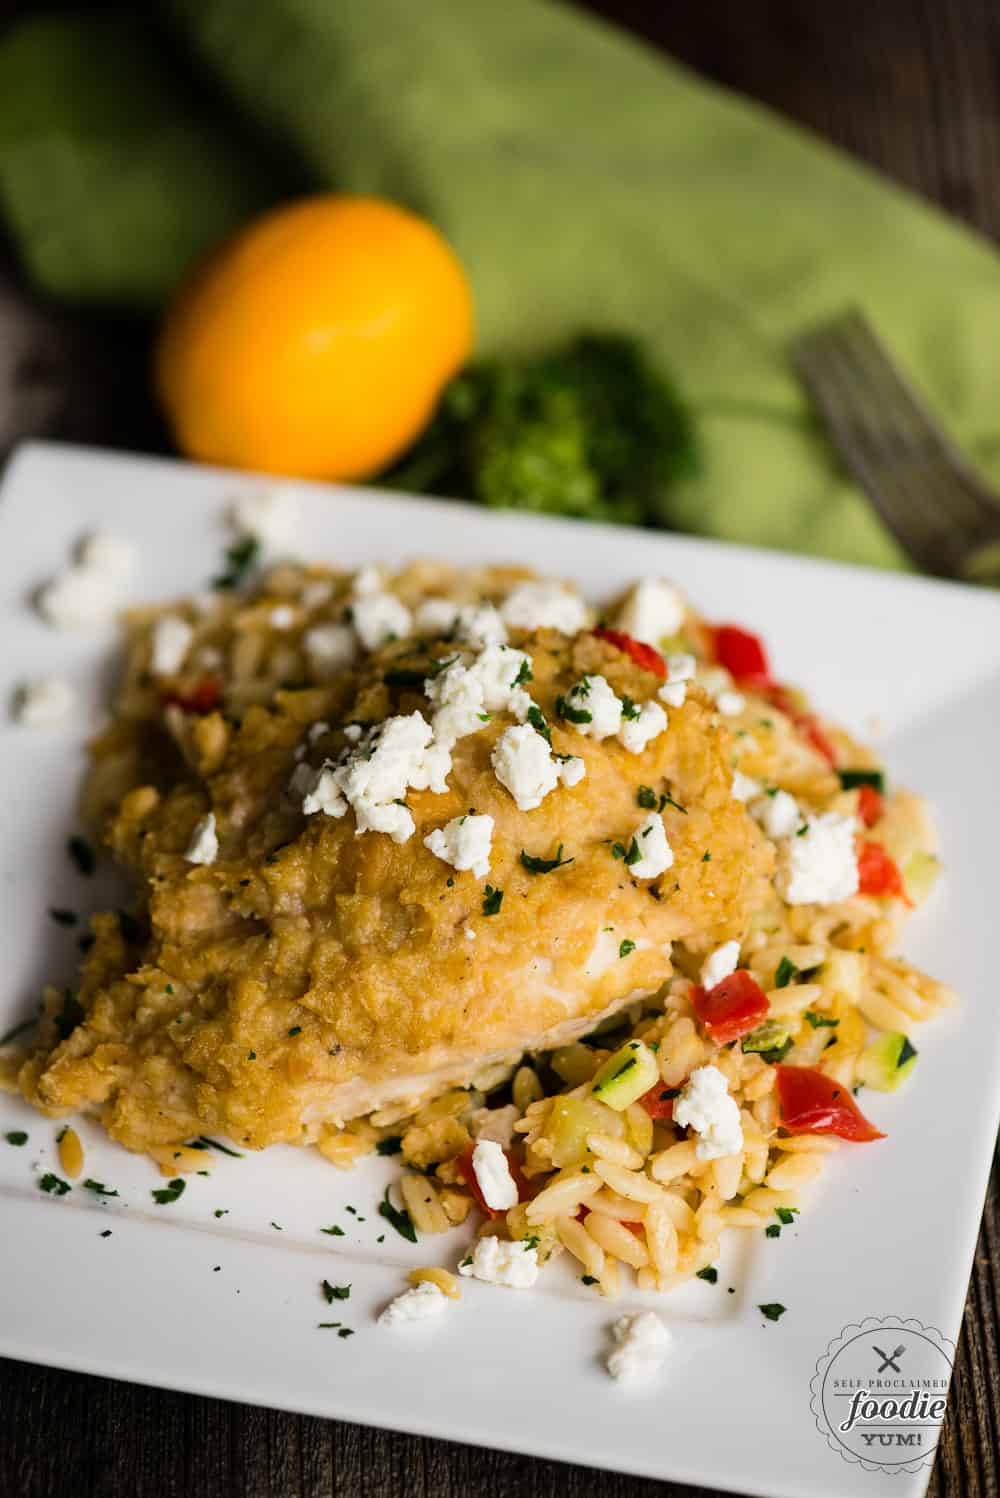 Hummus baked chicken with feta and vegetable orzo